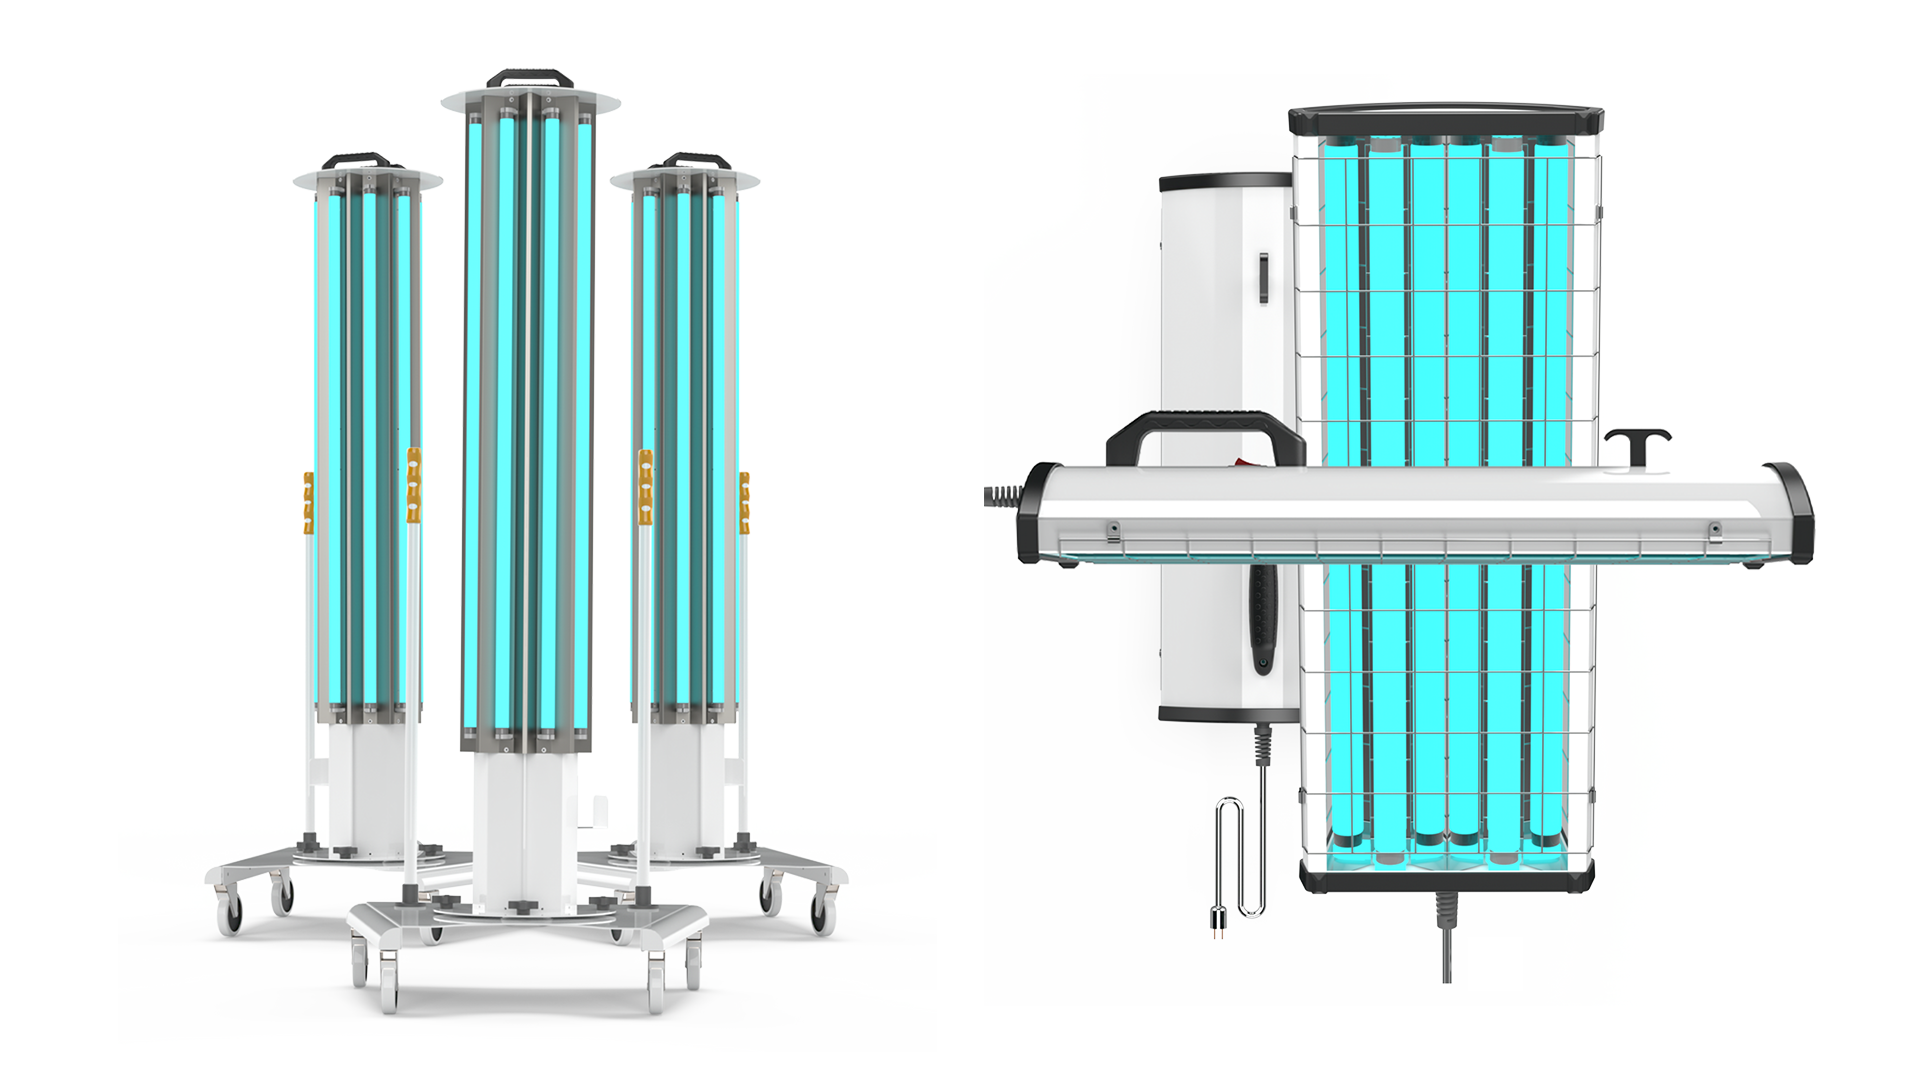 Introducing UVC Disinfection System